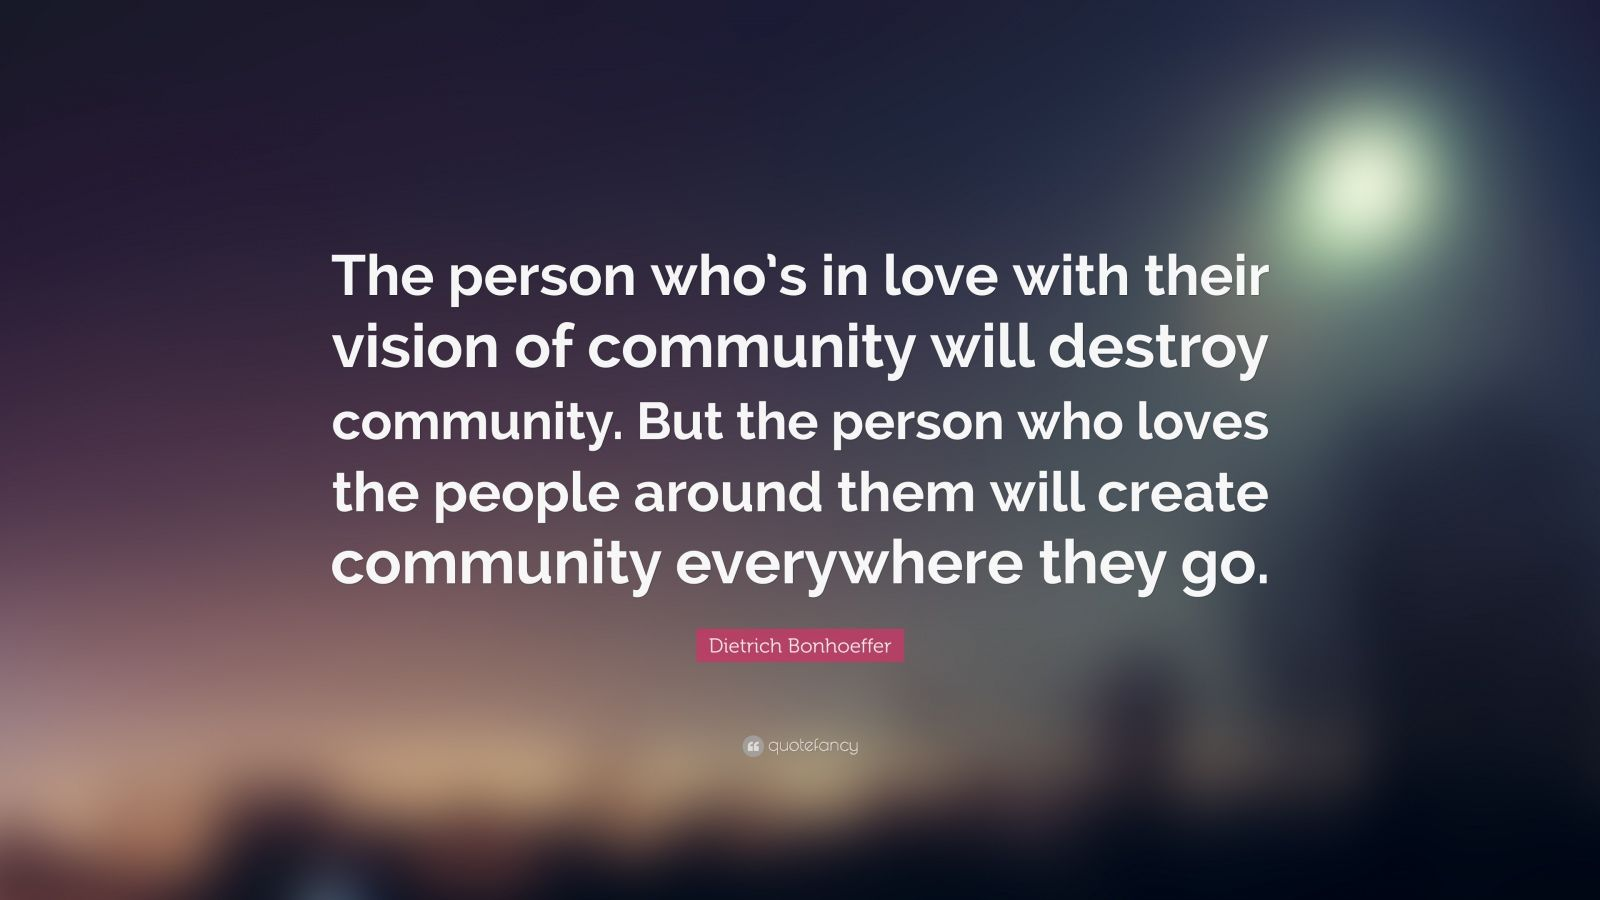 """Dietrich Bonhoeffer Quote: """"The person who's in love with their vision of community will destroy community. But the person who loves the people around them will create community everywhere they go."""""""